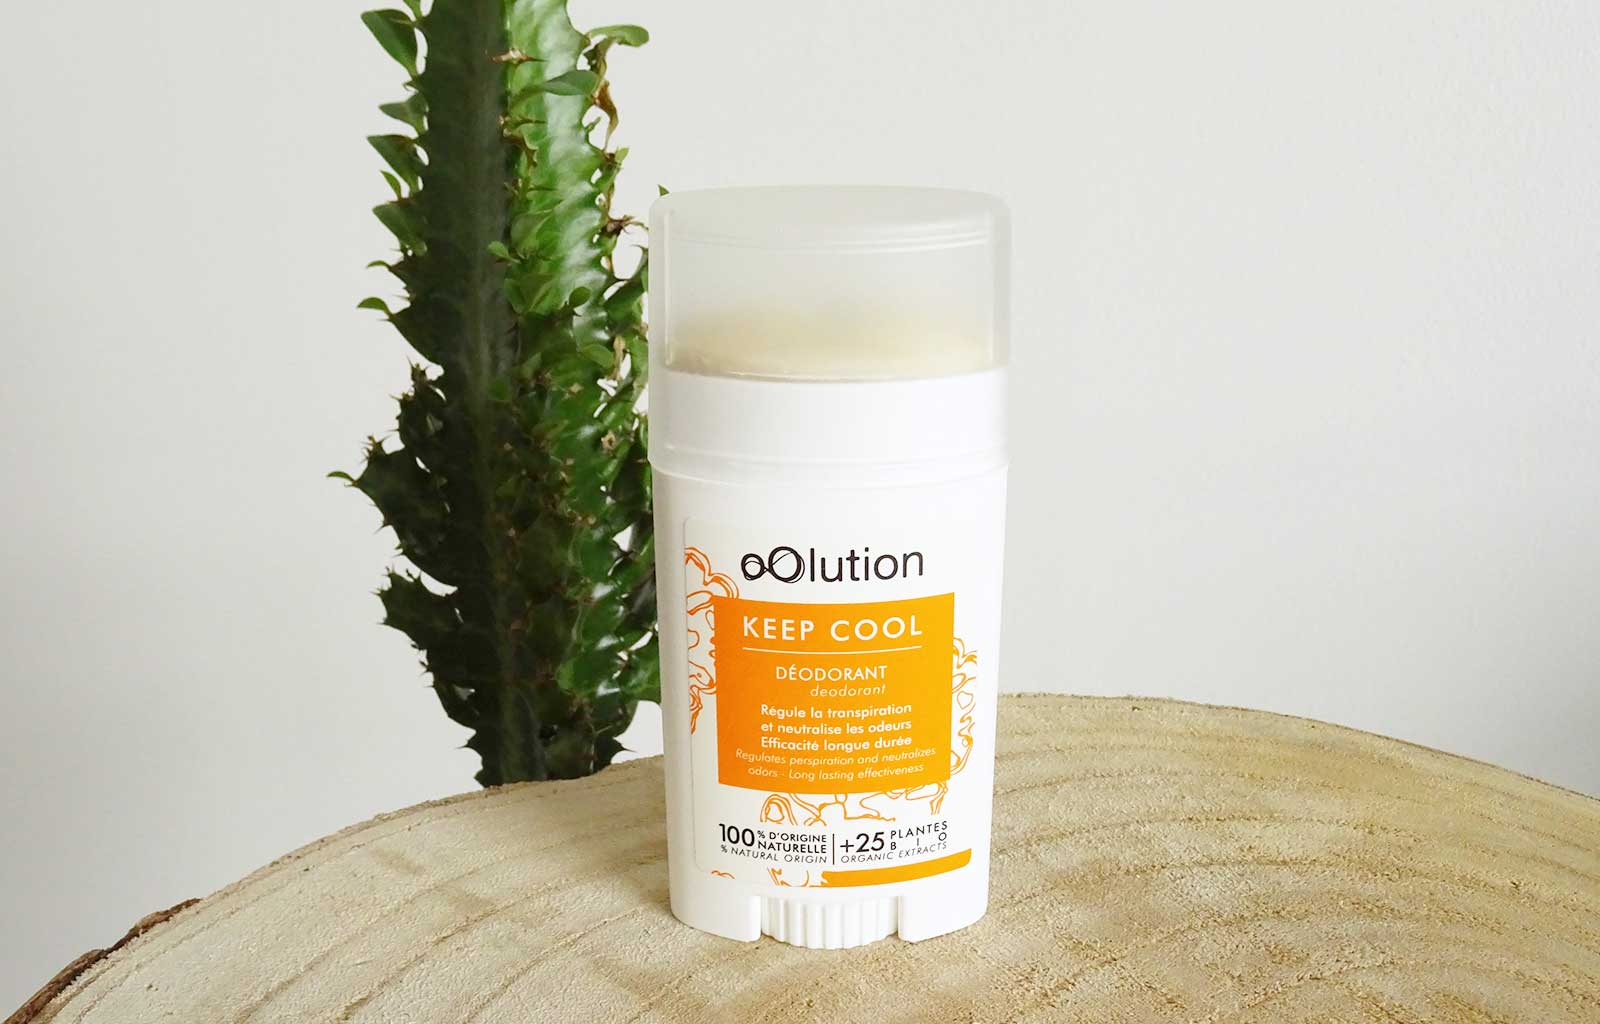 déodorant keep cool oolution